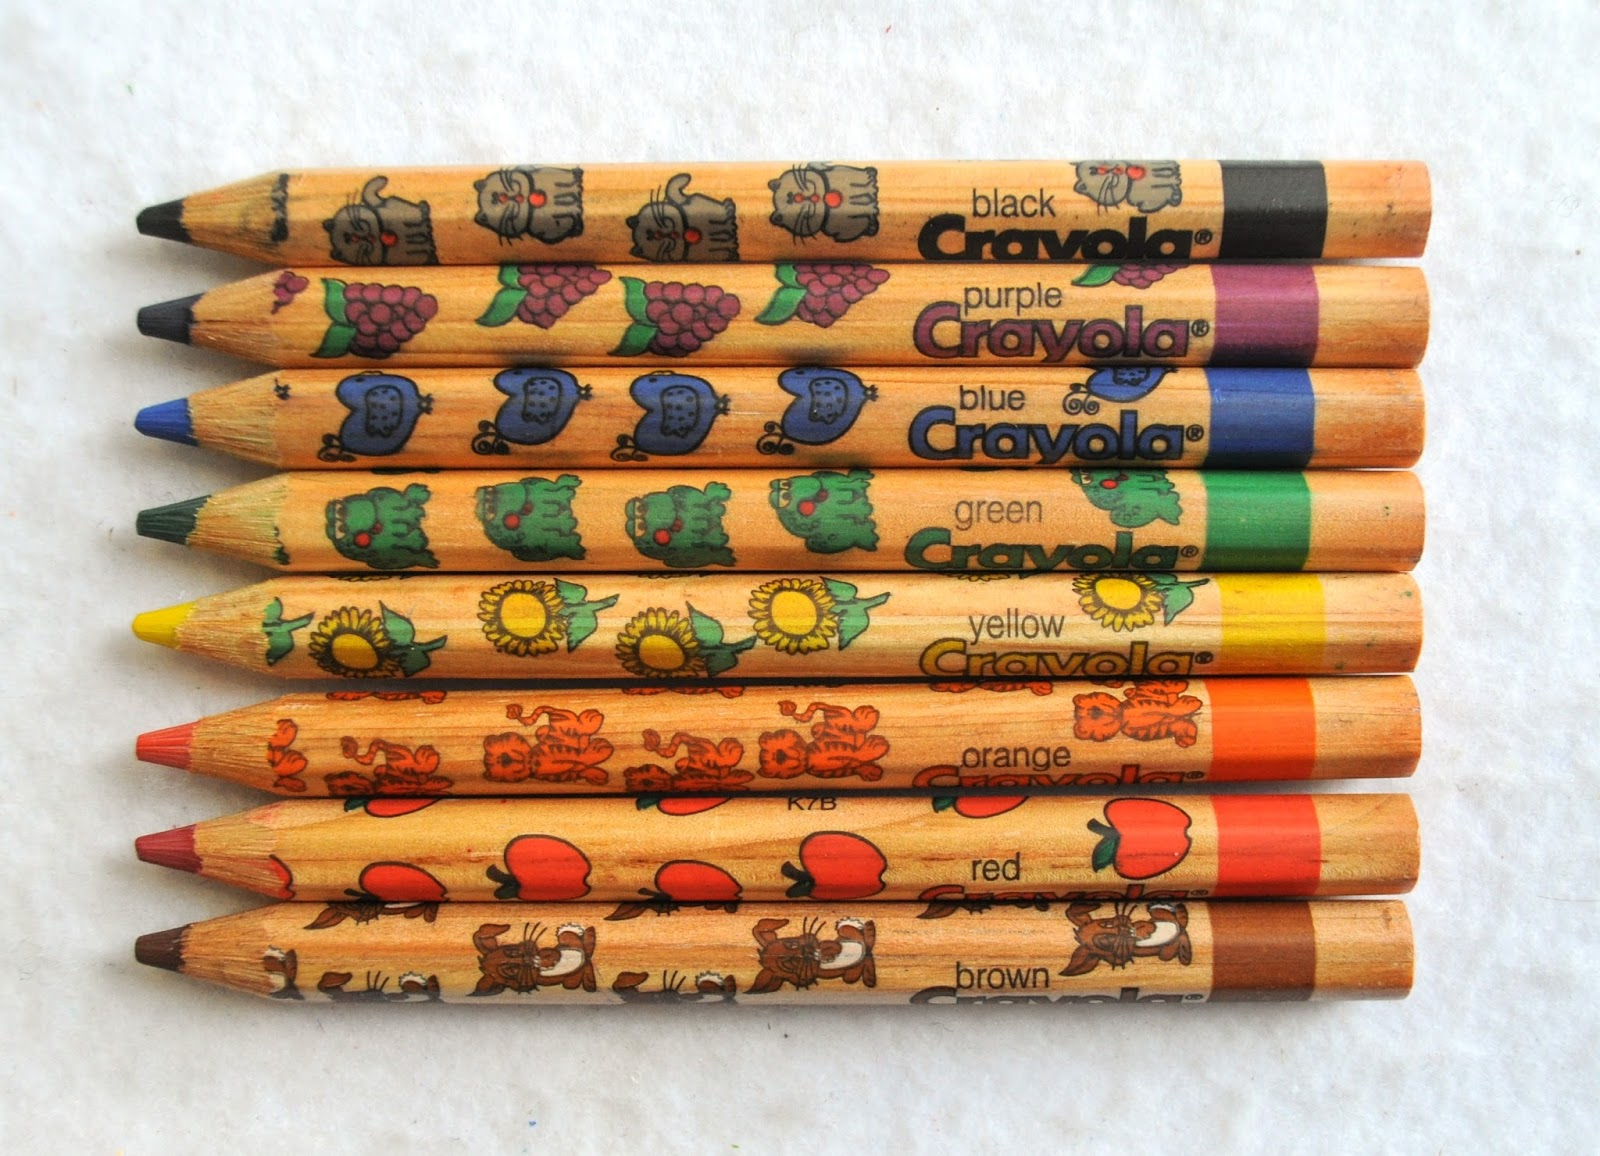 8 Count Crayola Write Start Colored Pencils Whats Inside the Box